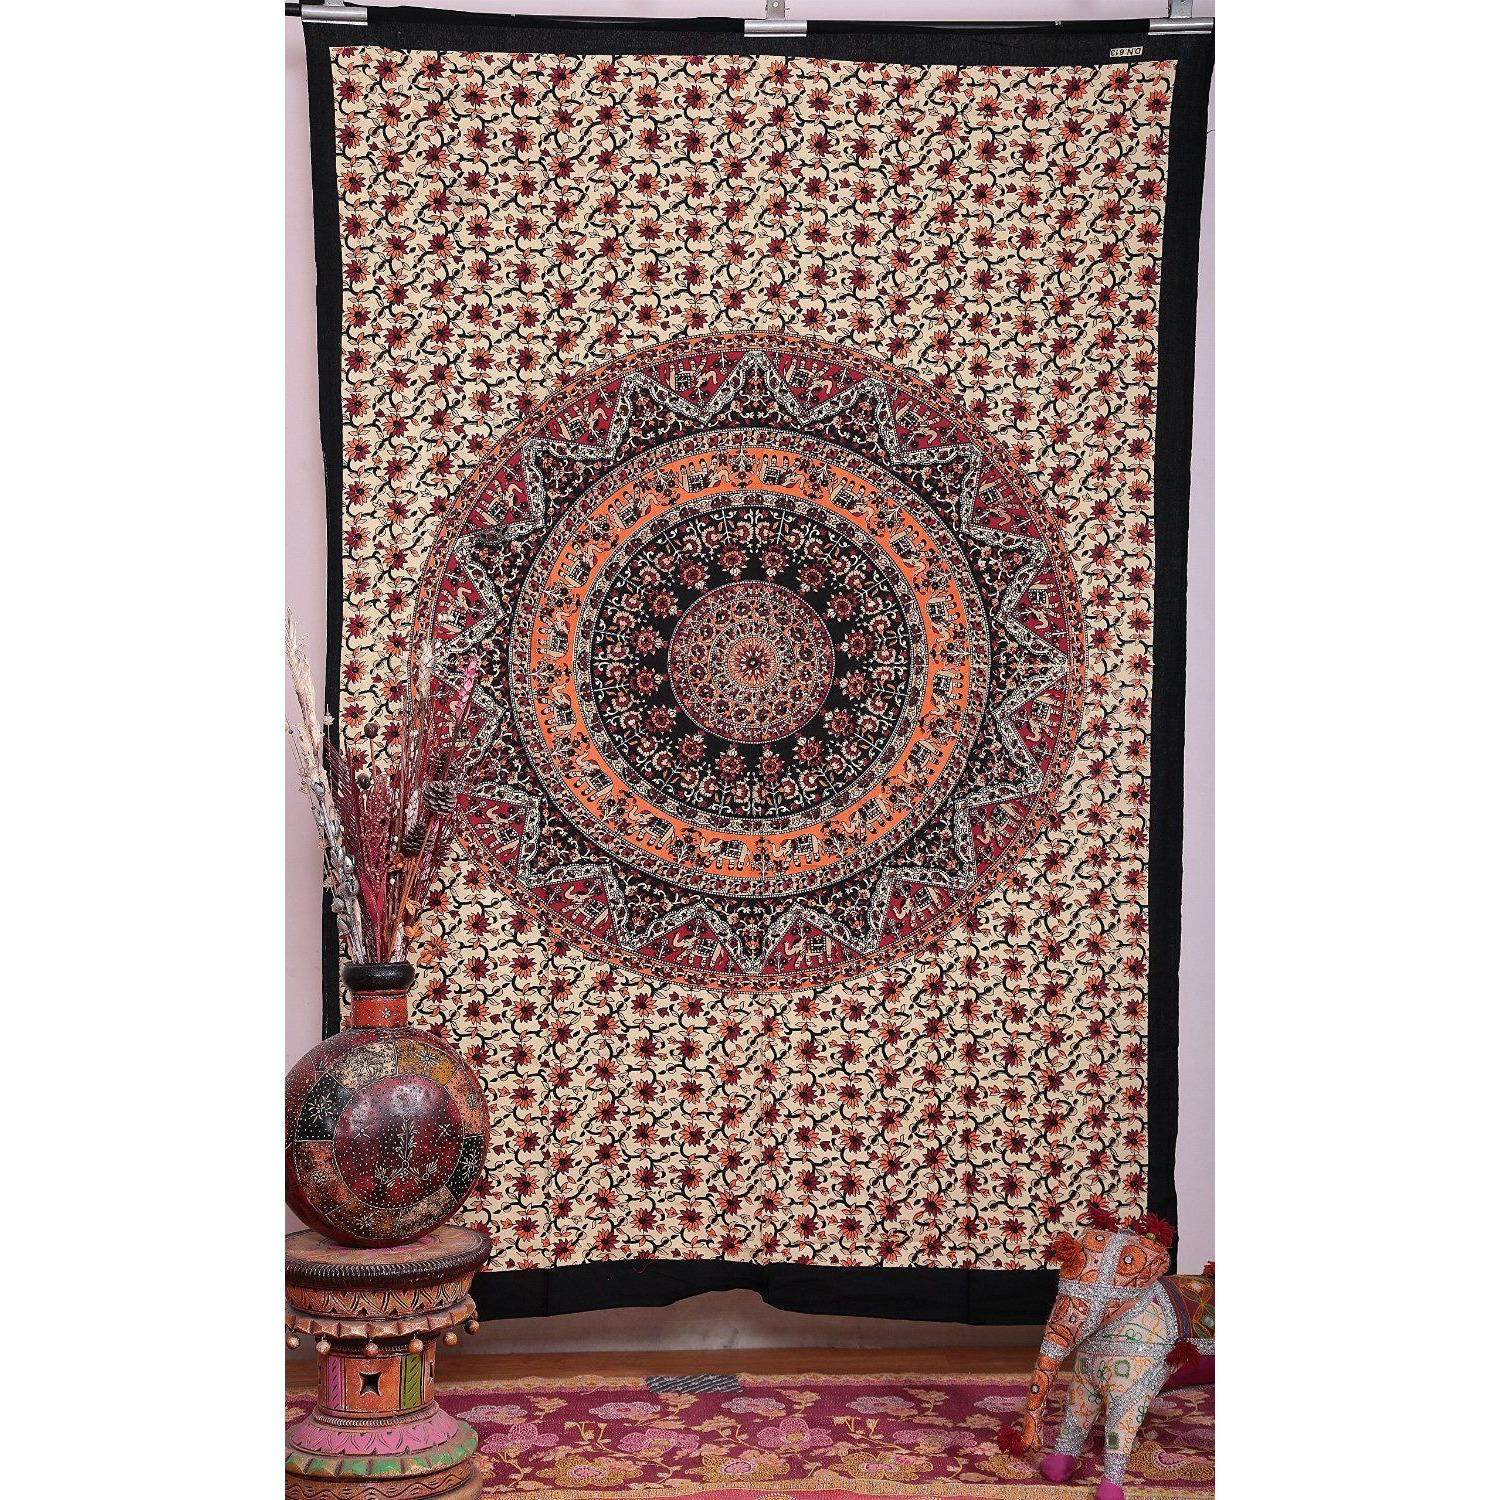 5 Pcs Wholesale Lot Indian Mandala Tapestry Hippie Wall Hanging Decor Bedspread